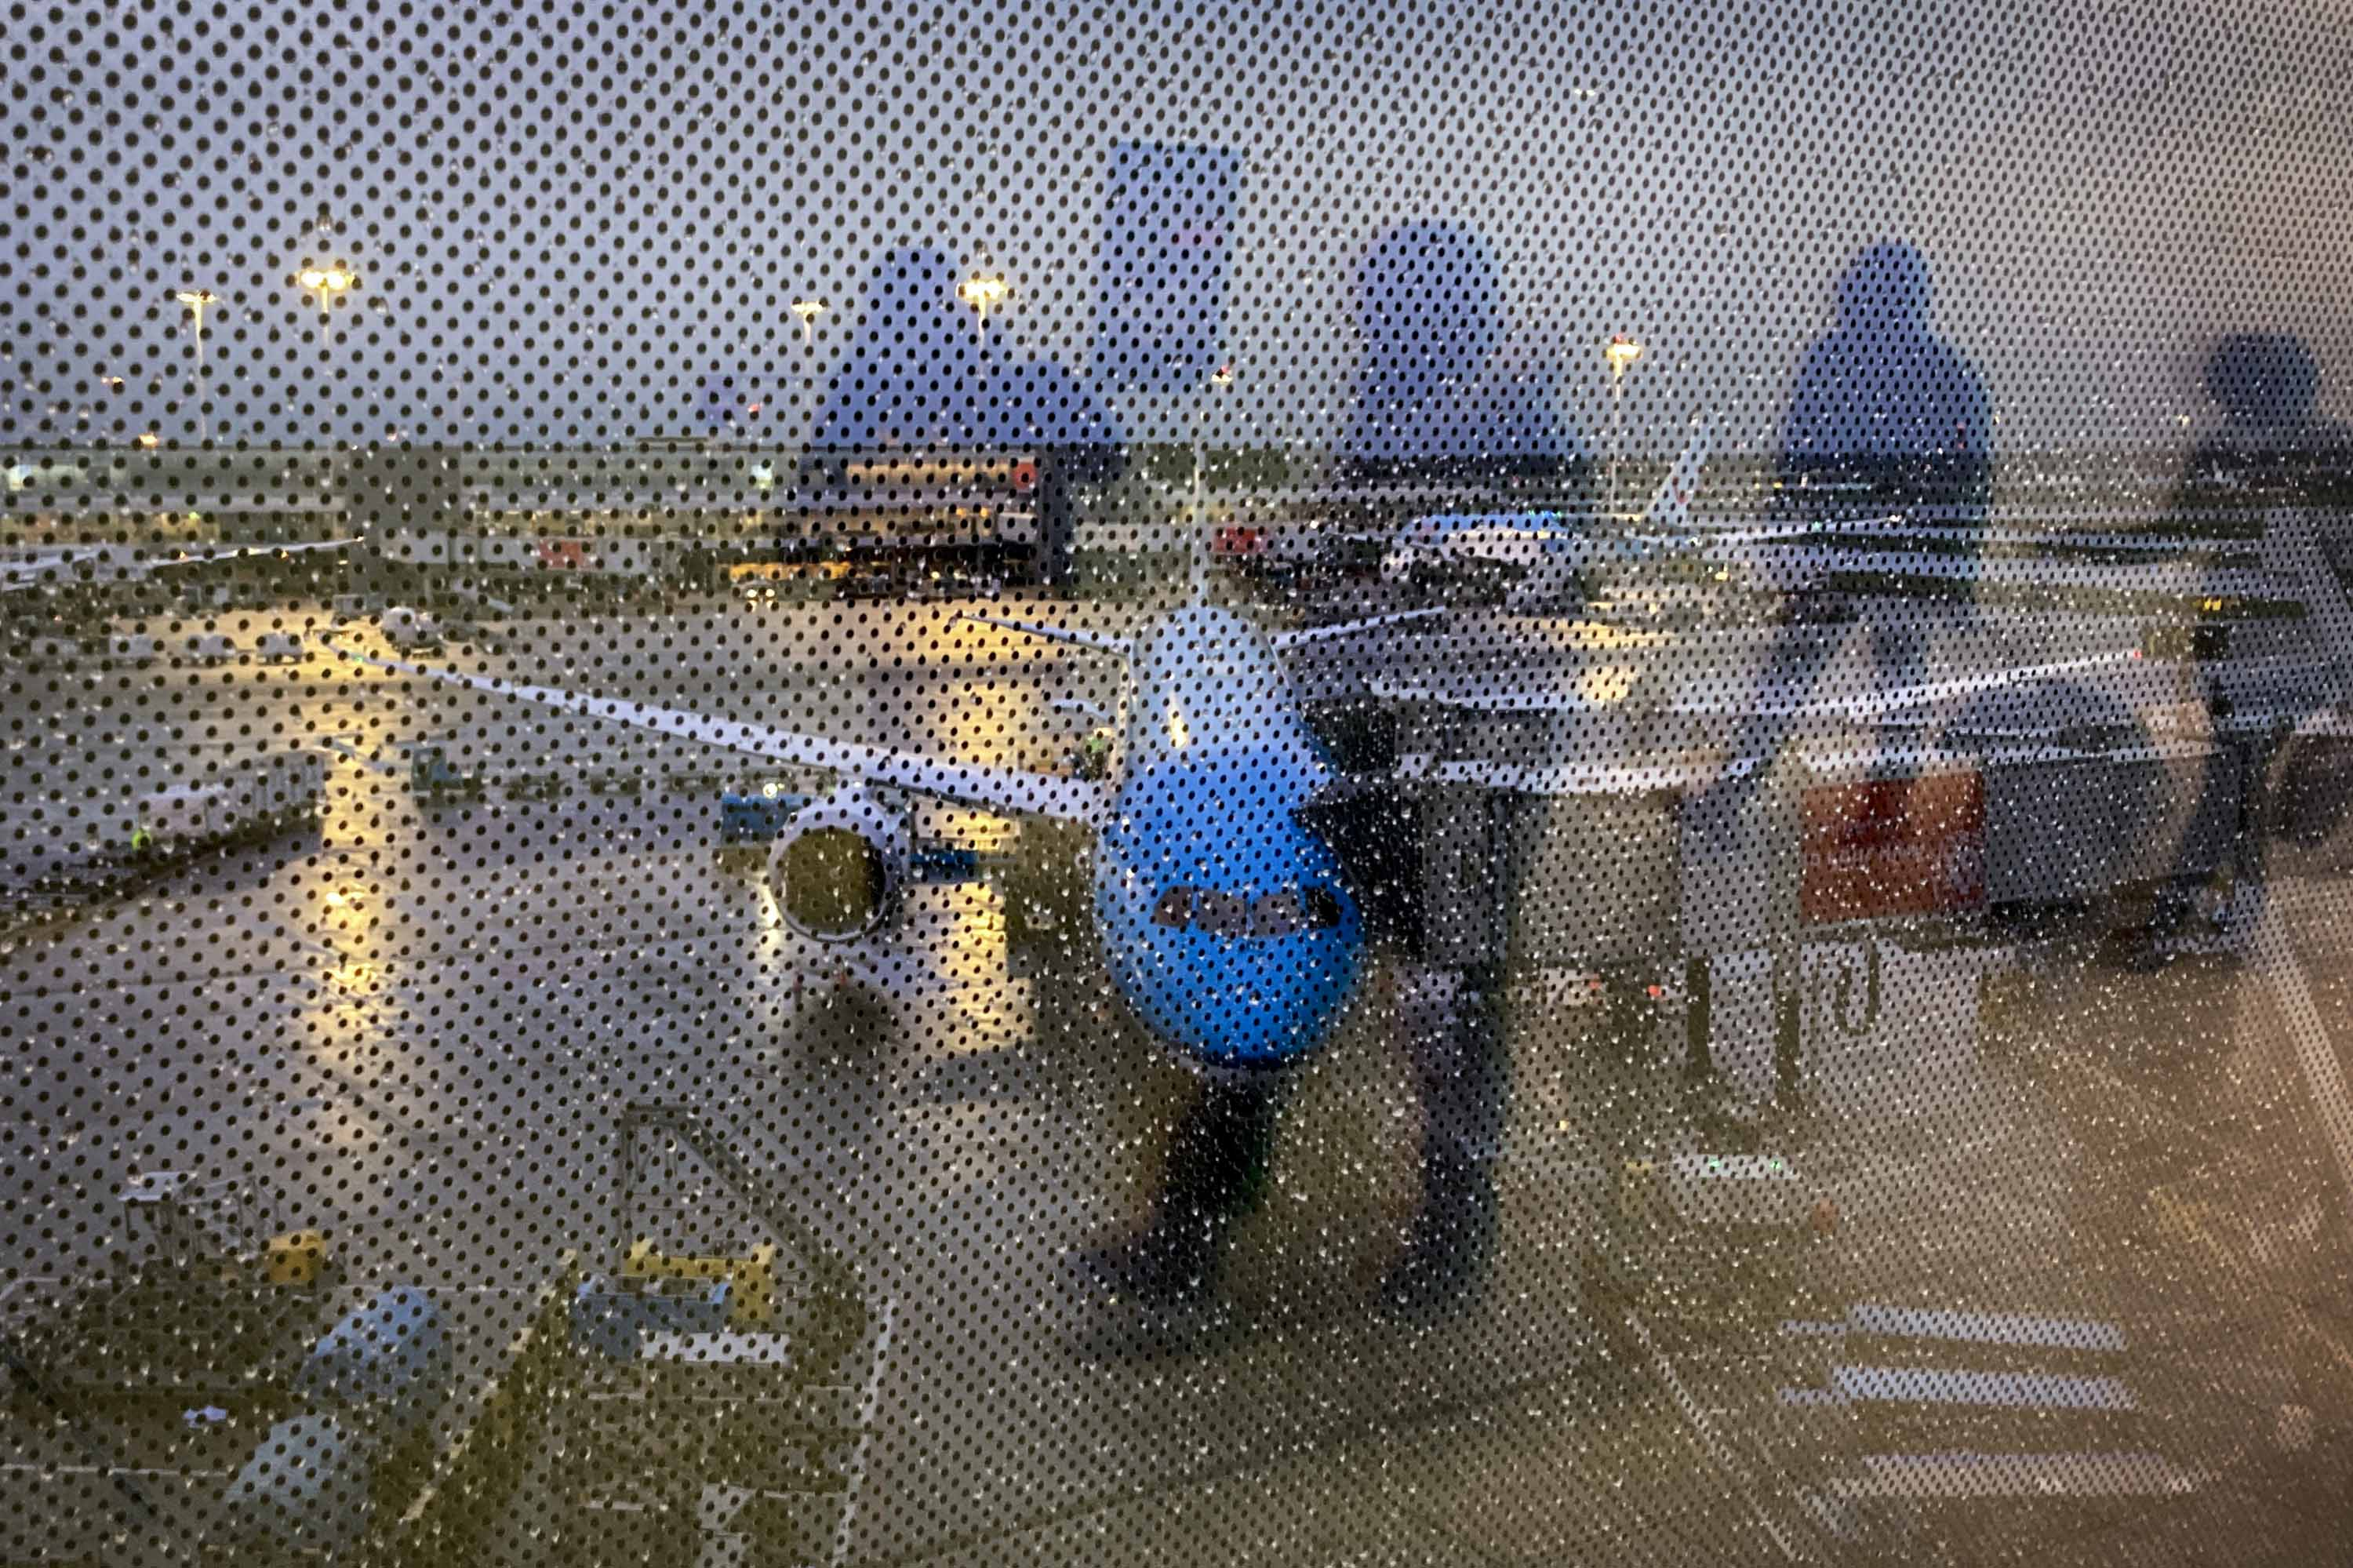 Arriving passengers are reflected in a screened window at the airport in Amsterdam, Netherlands, on December 24.